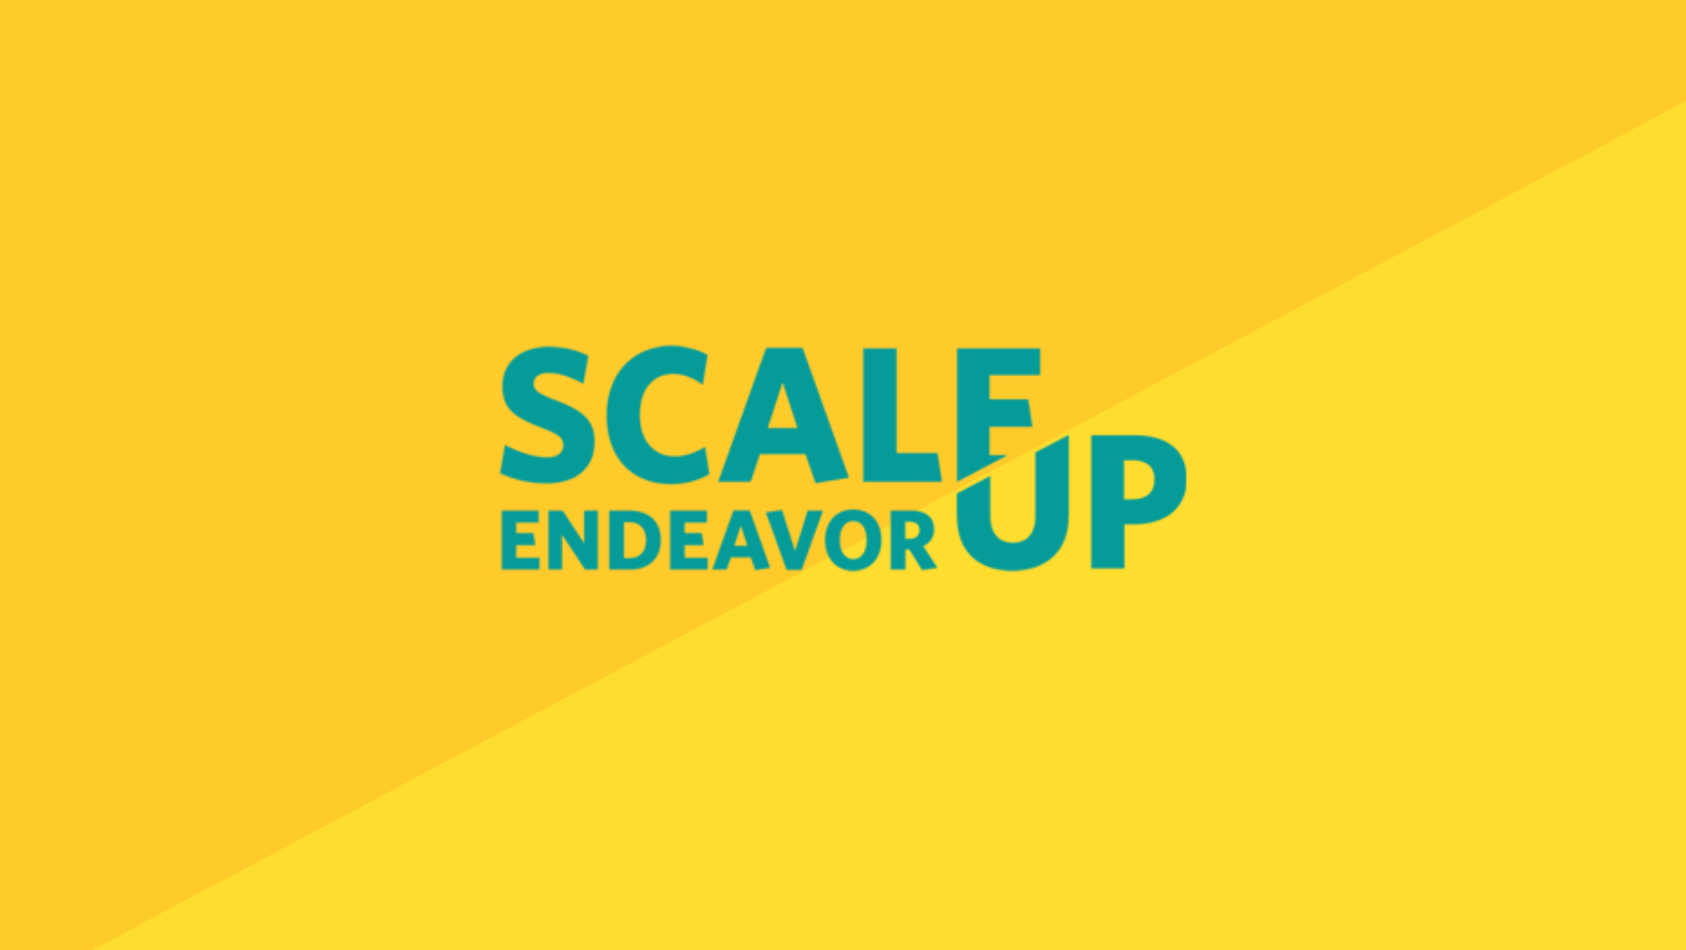 Endeavor Announces Second Annual Scale Up Cohort across Kentucky, Indiana, and Ohio